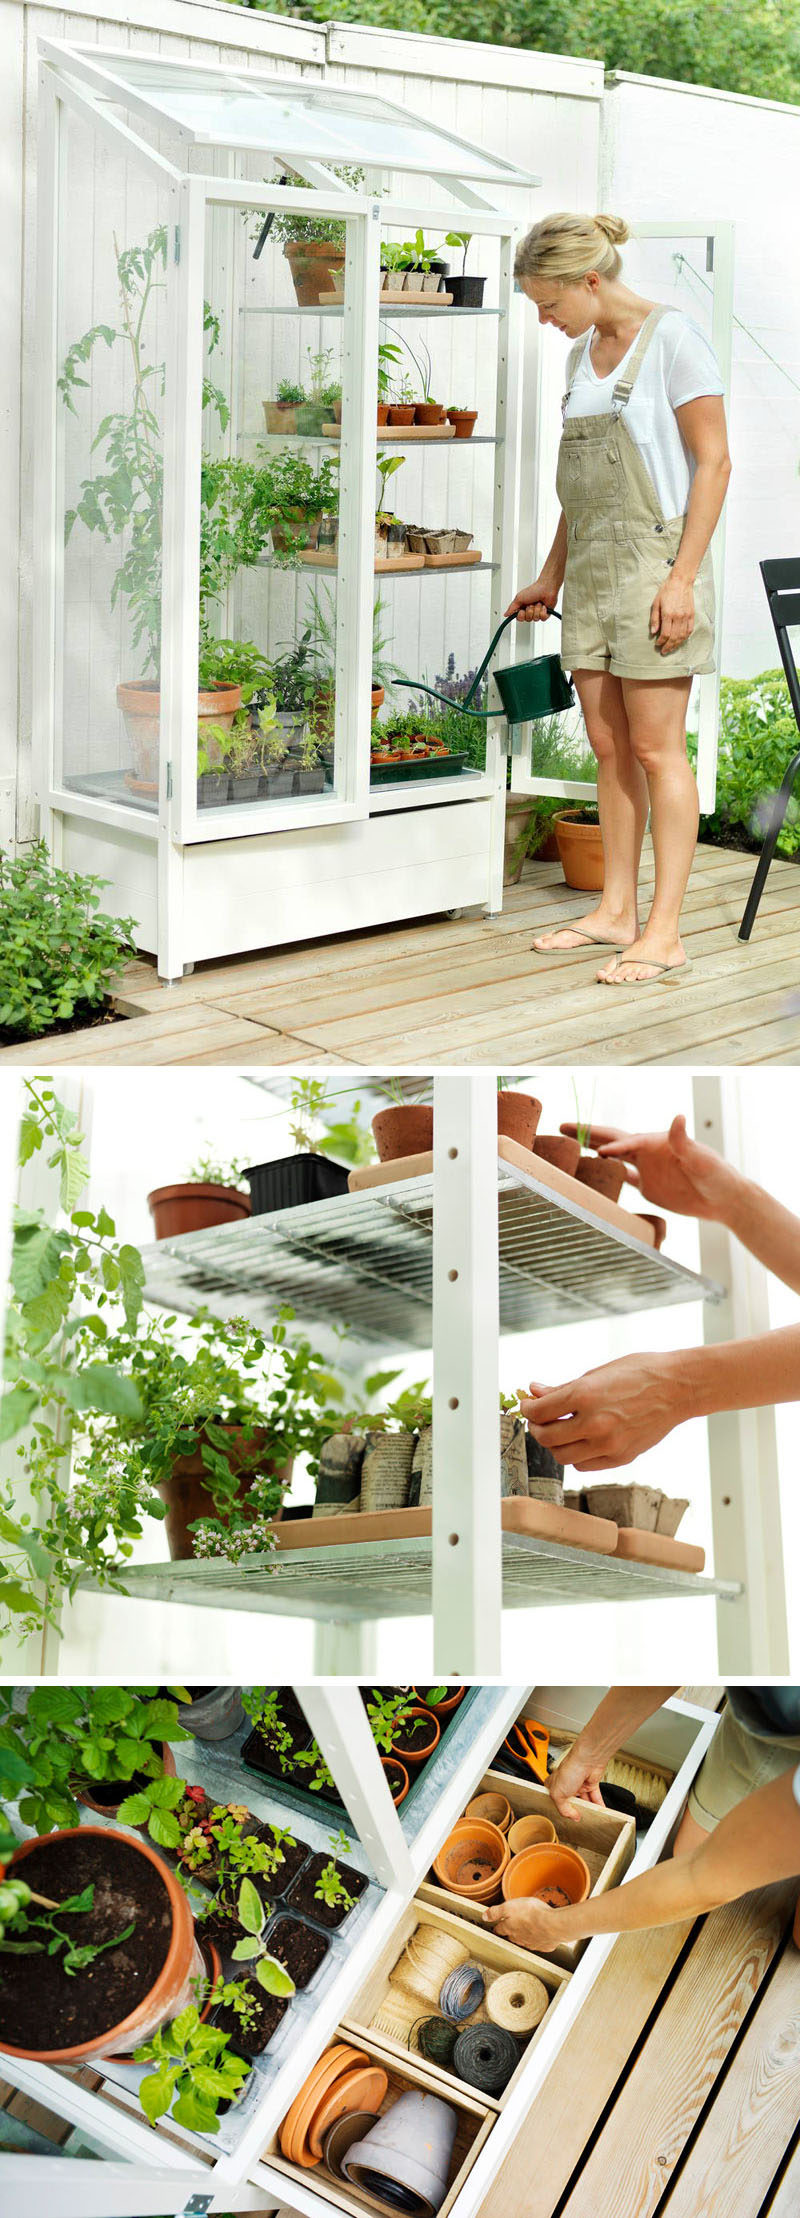 These customizable garden shelves enable to become a master gardener, or at the very least, help you look like one.